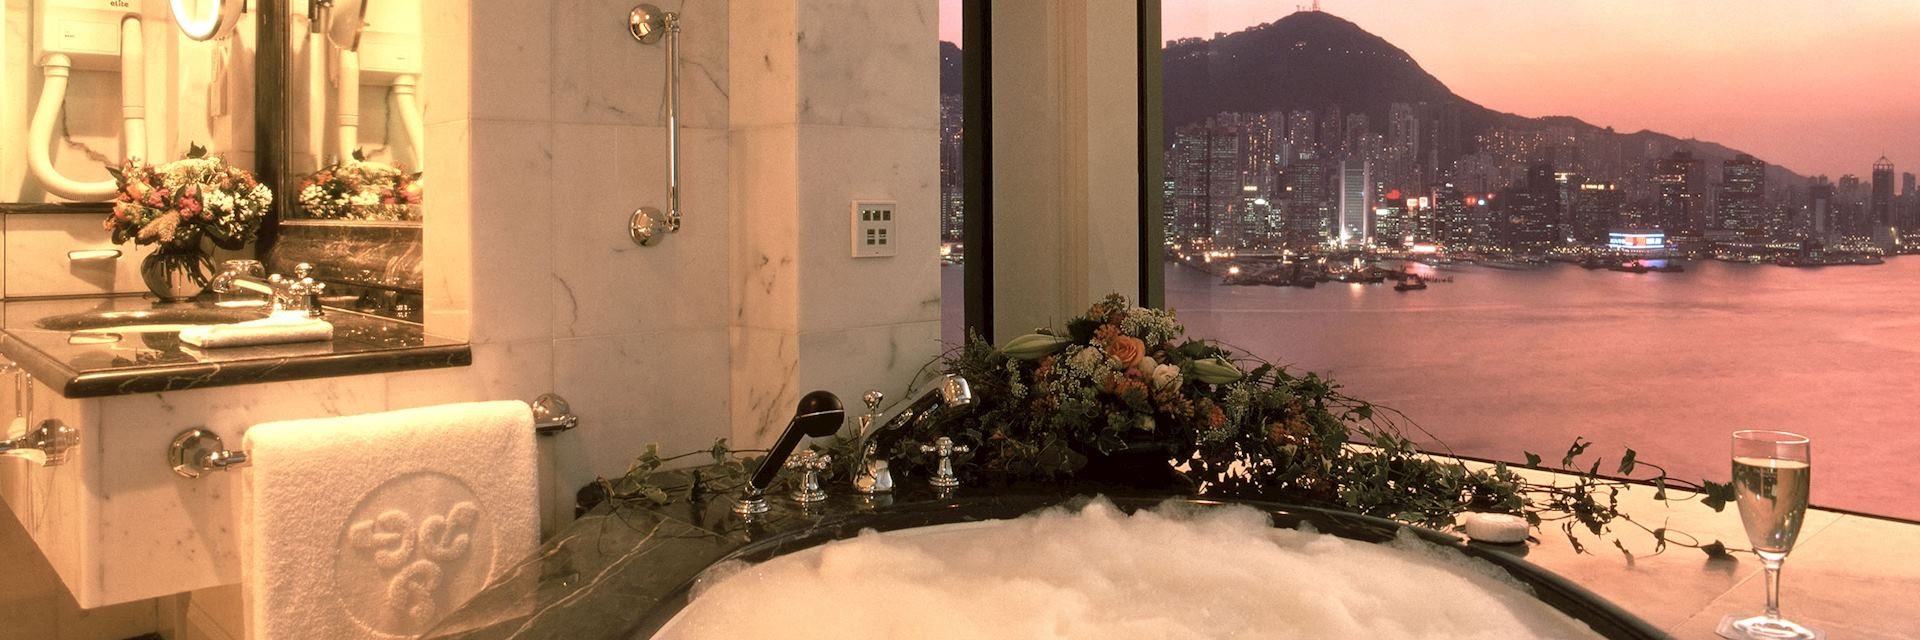 Bathroom Suite, Peninsula Hotel, Hong Kong